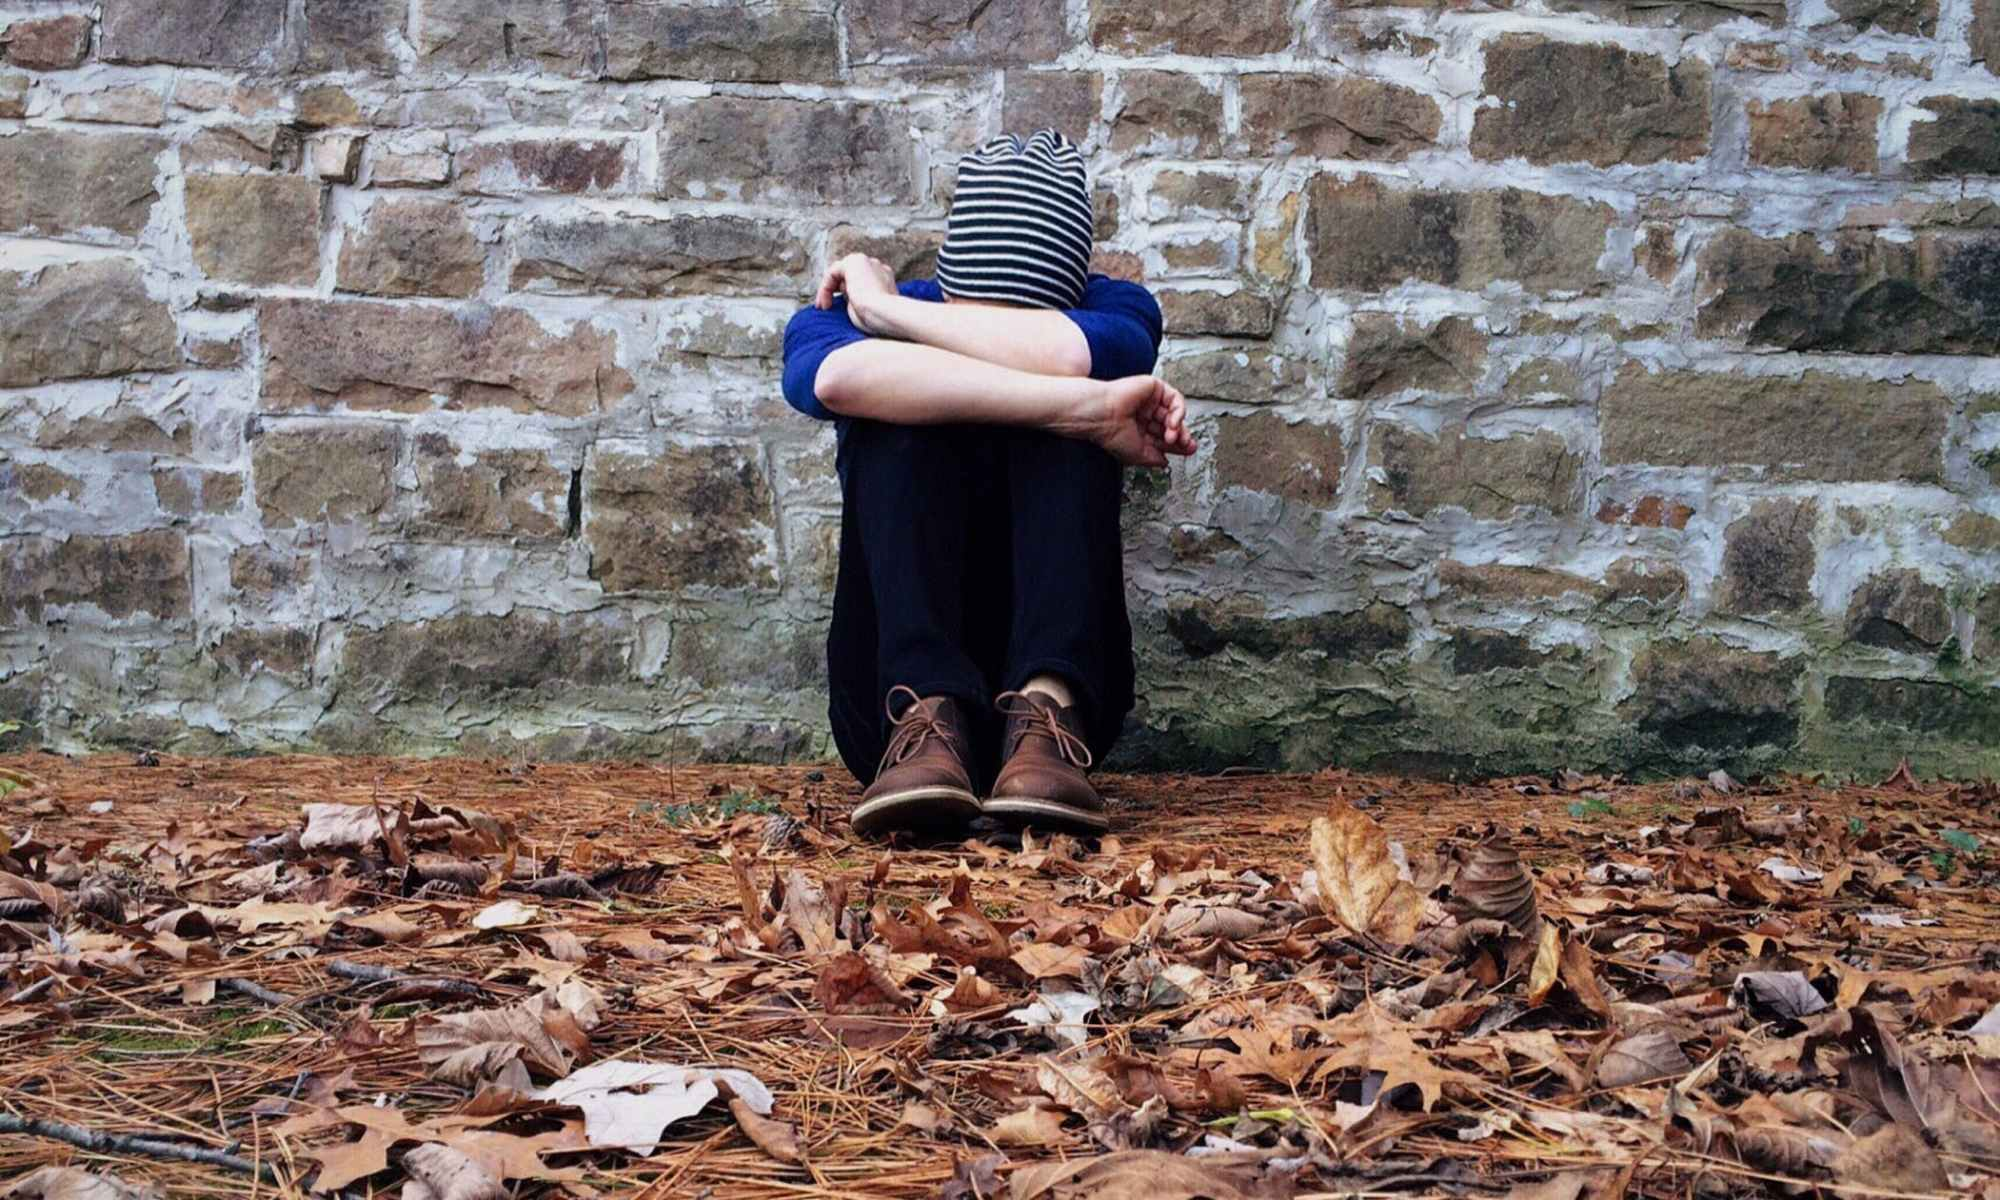 Young depressed person sitting on ground with leaves by stone wall with head down